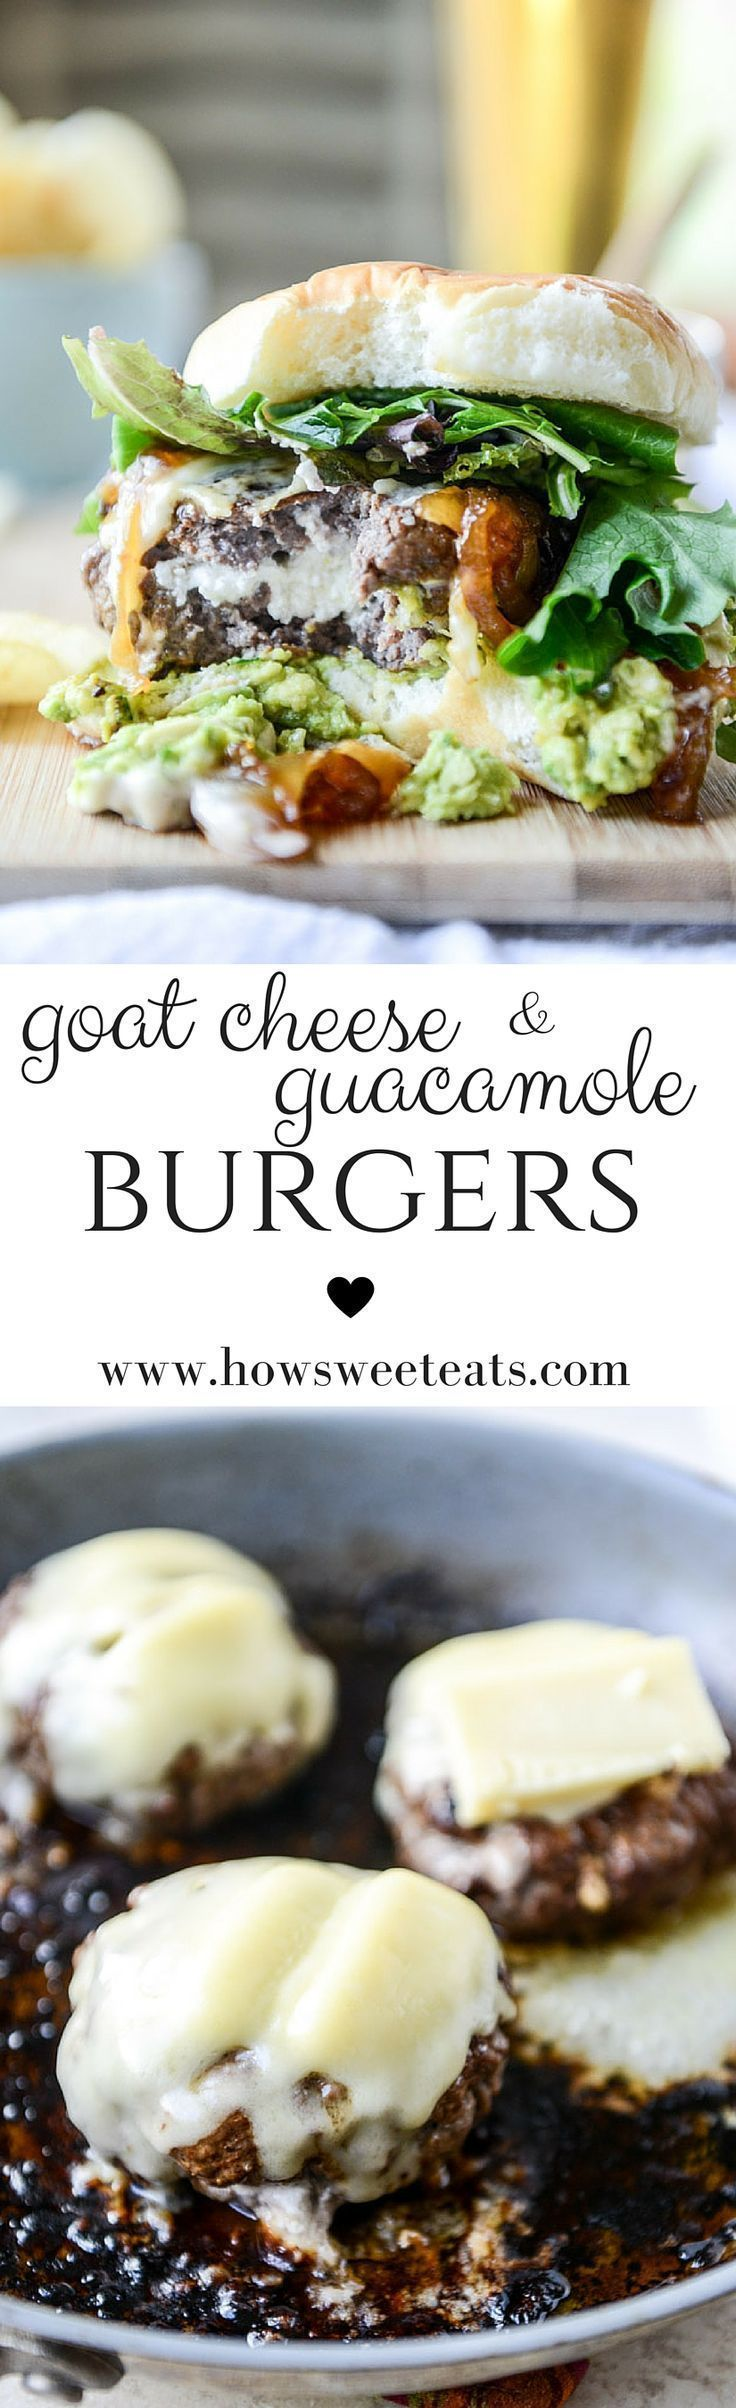 goat cheese guacamole burgers with caramelized onions by @howsweeteats I howsweeteats.com